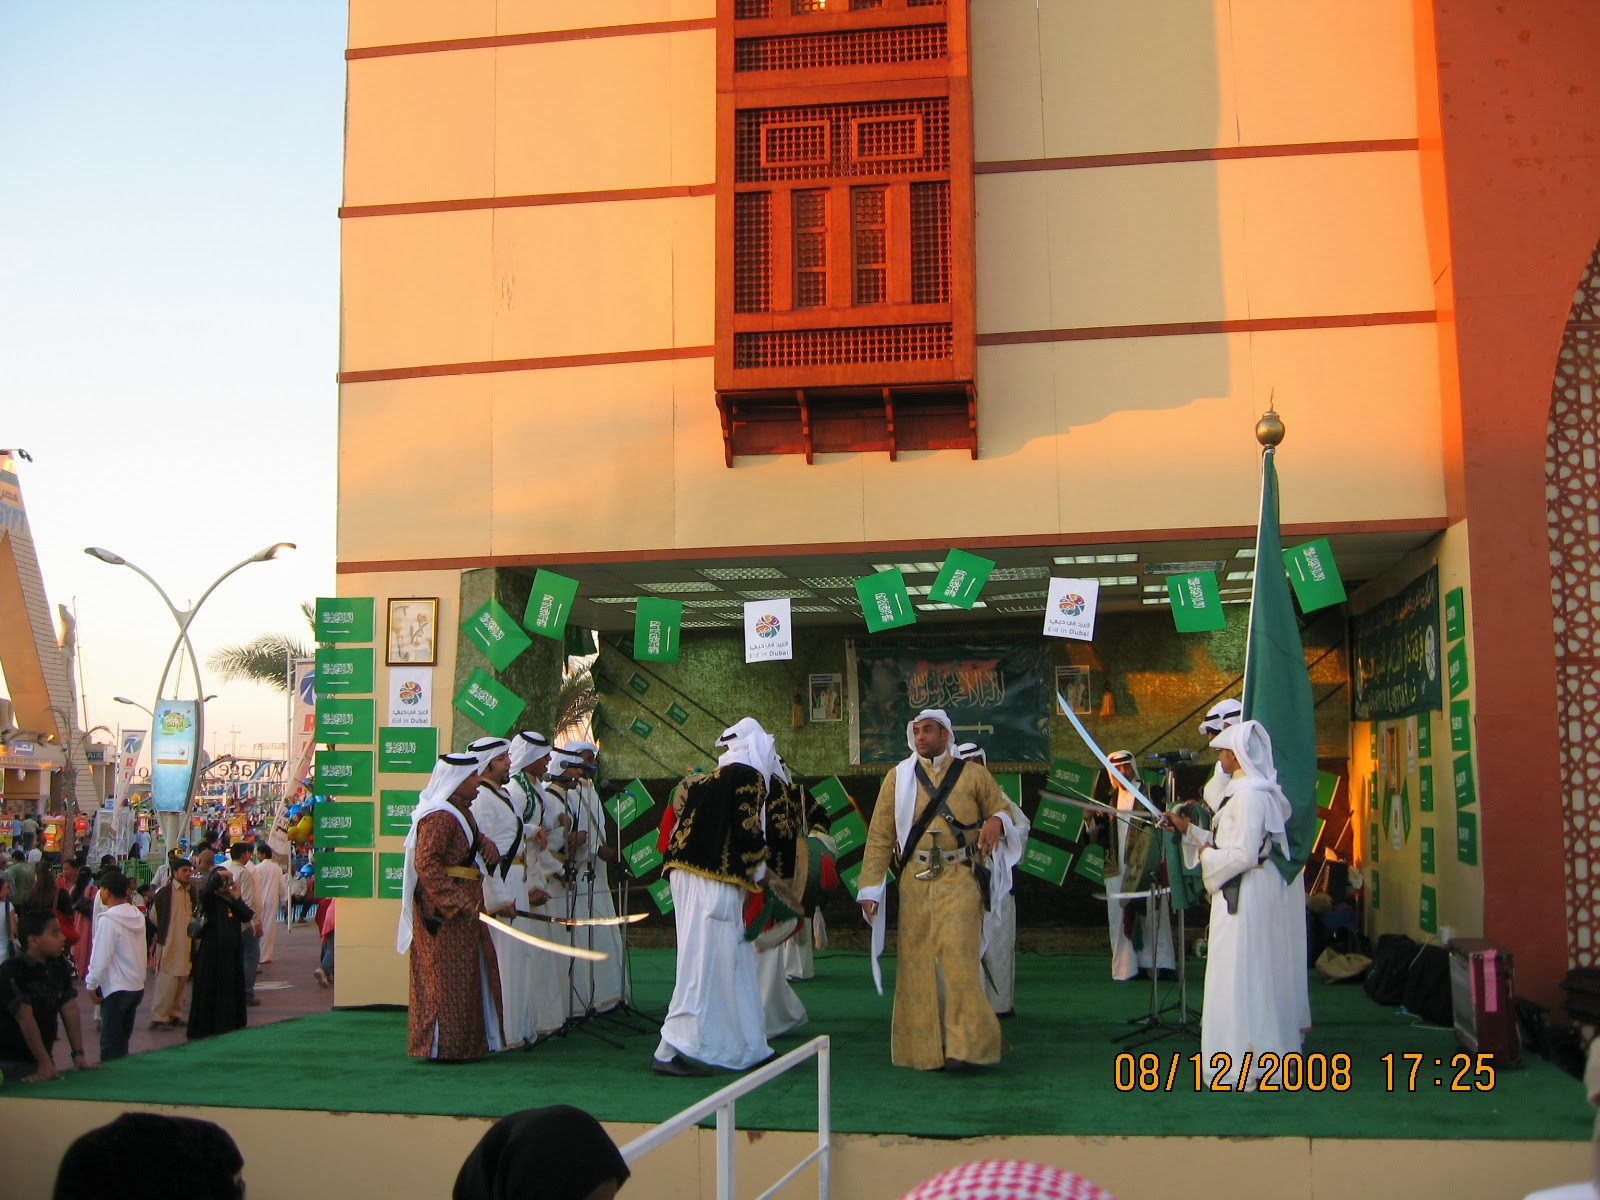 my world global village dubai a photo essay part  performance at kingdom of saudi arabia pavillion